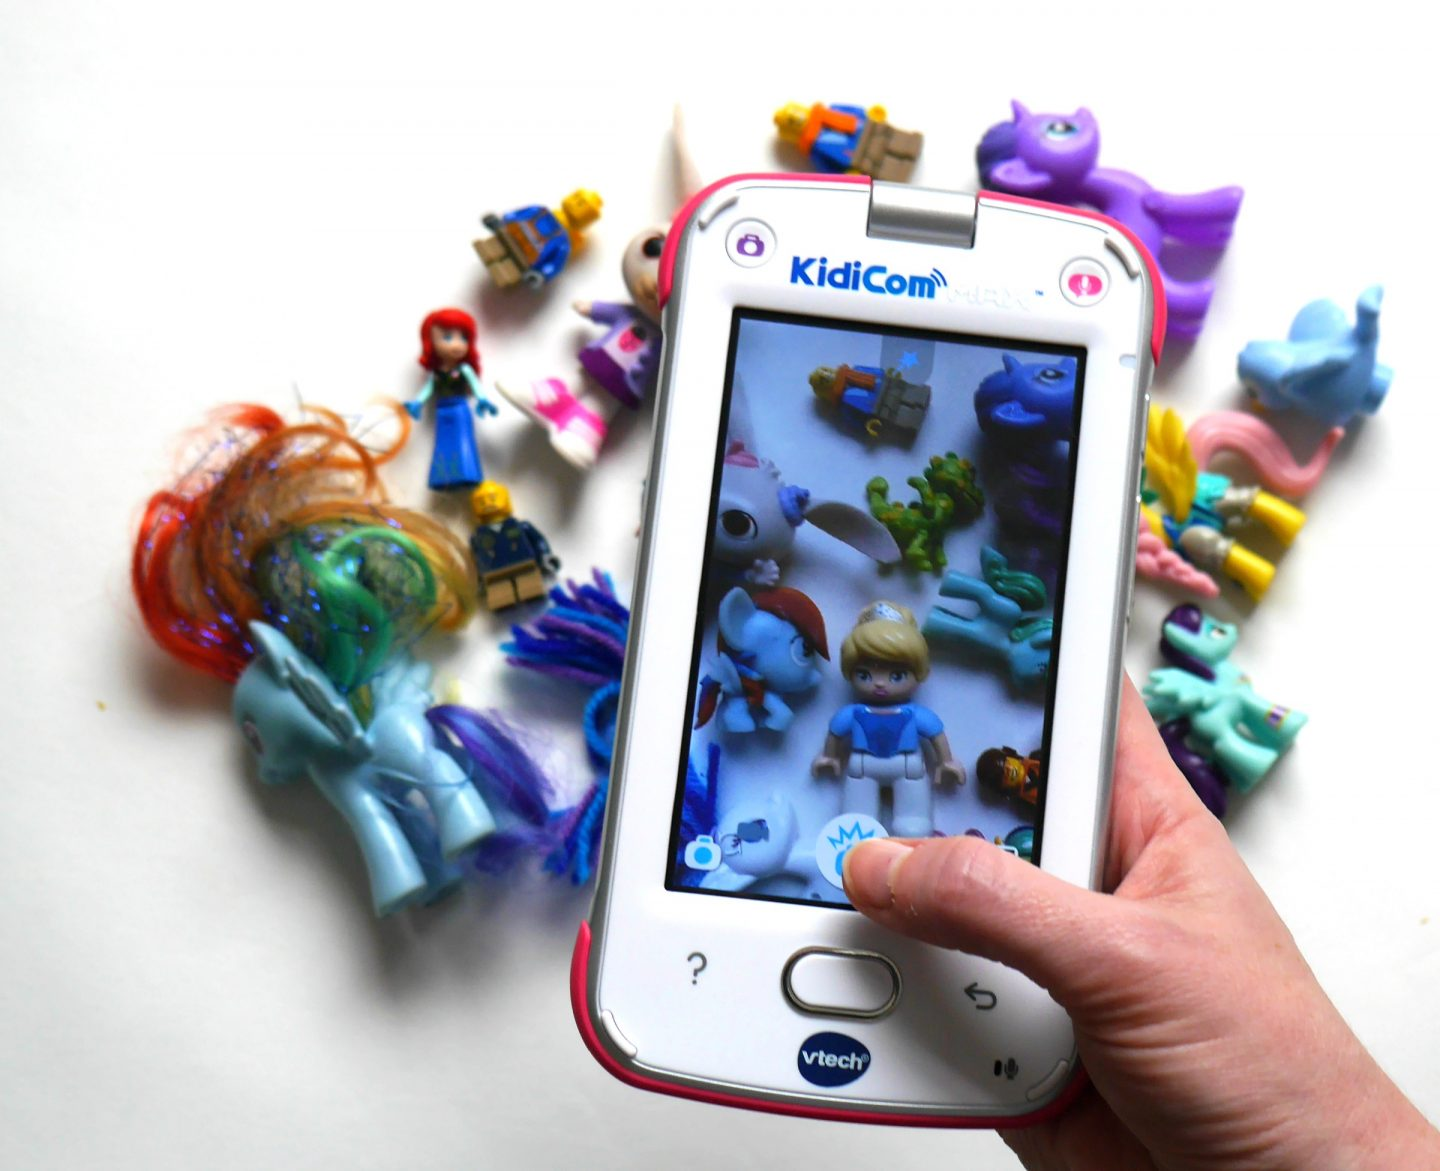 KidiCom Max review from Vtech - children's tablet and messenger system